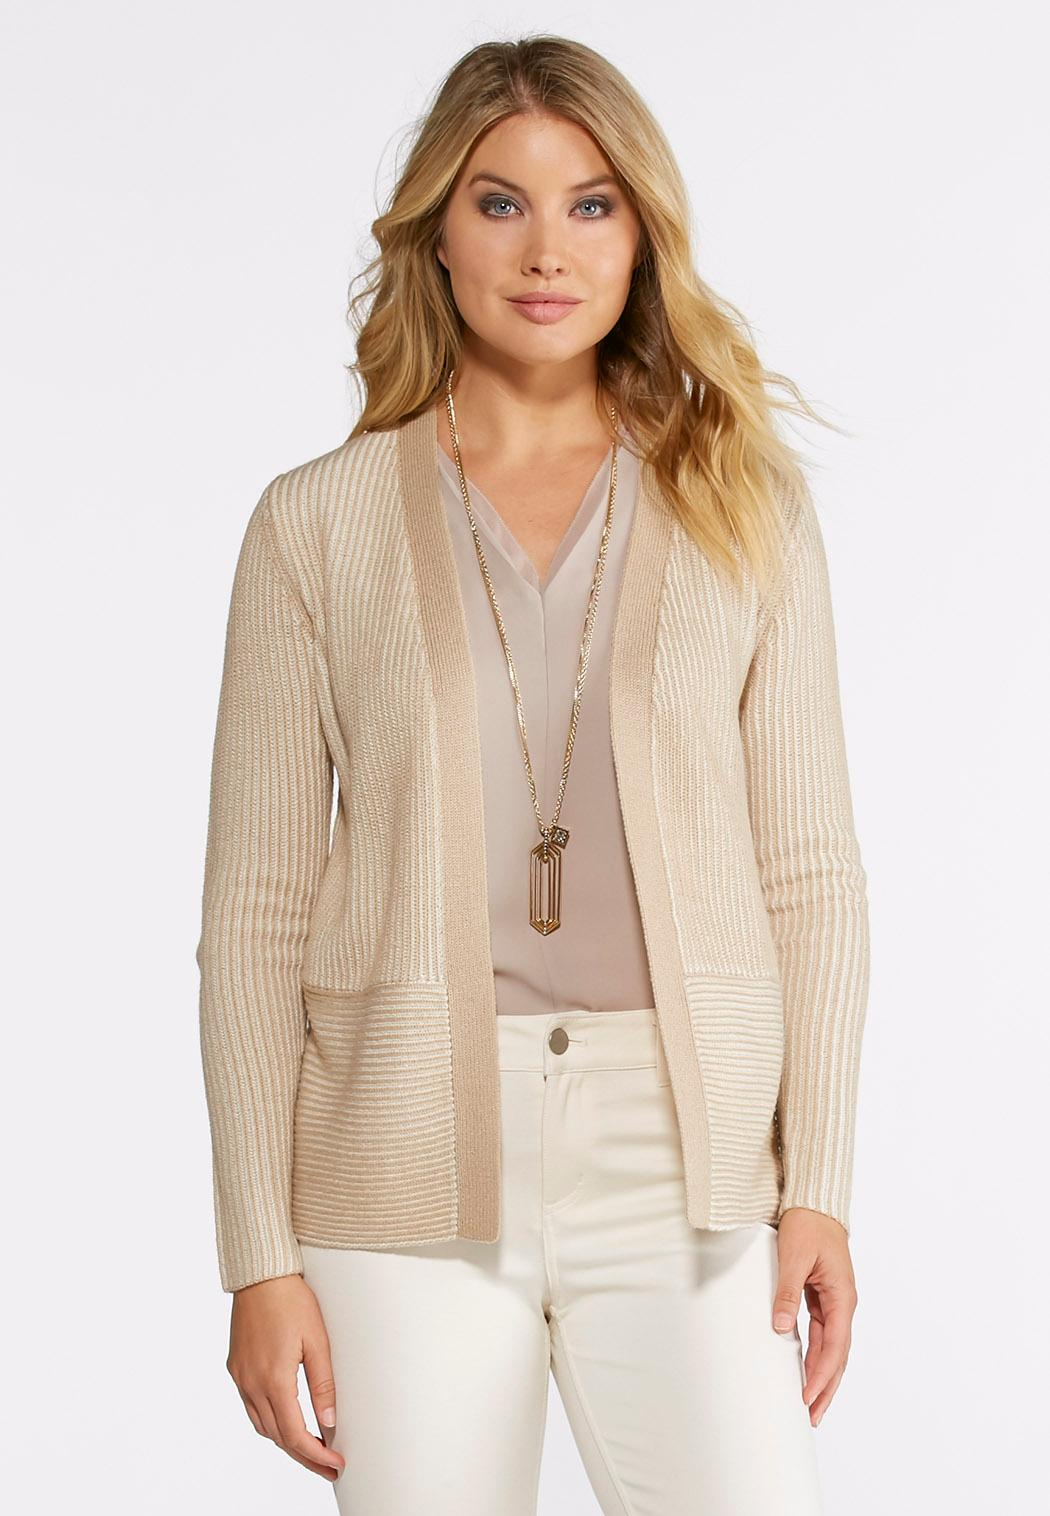 Two-Toned Cardigan Sweater Cardigans & Shrugs Cato Fashions